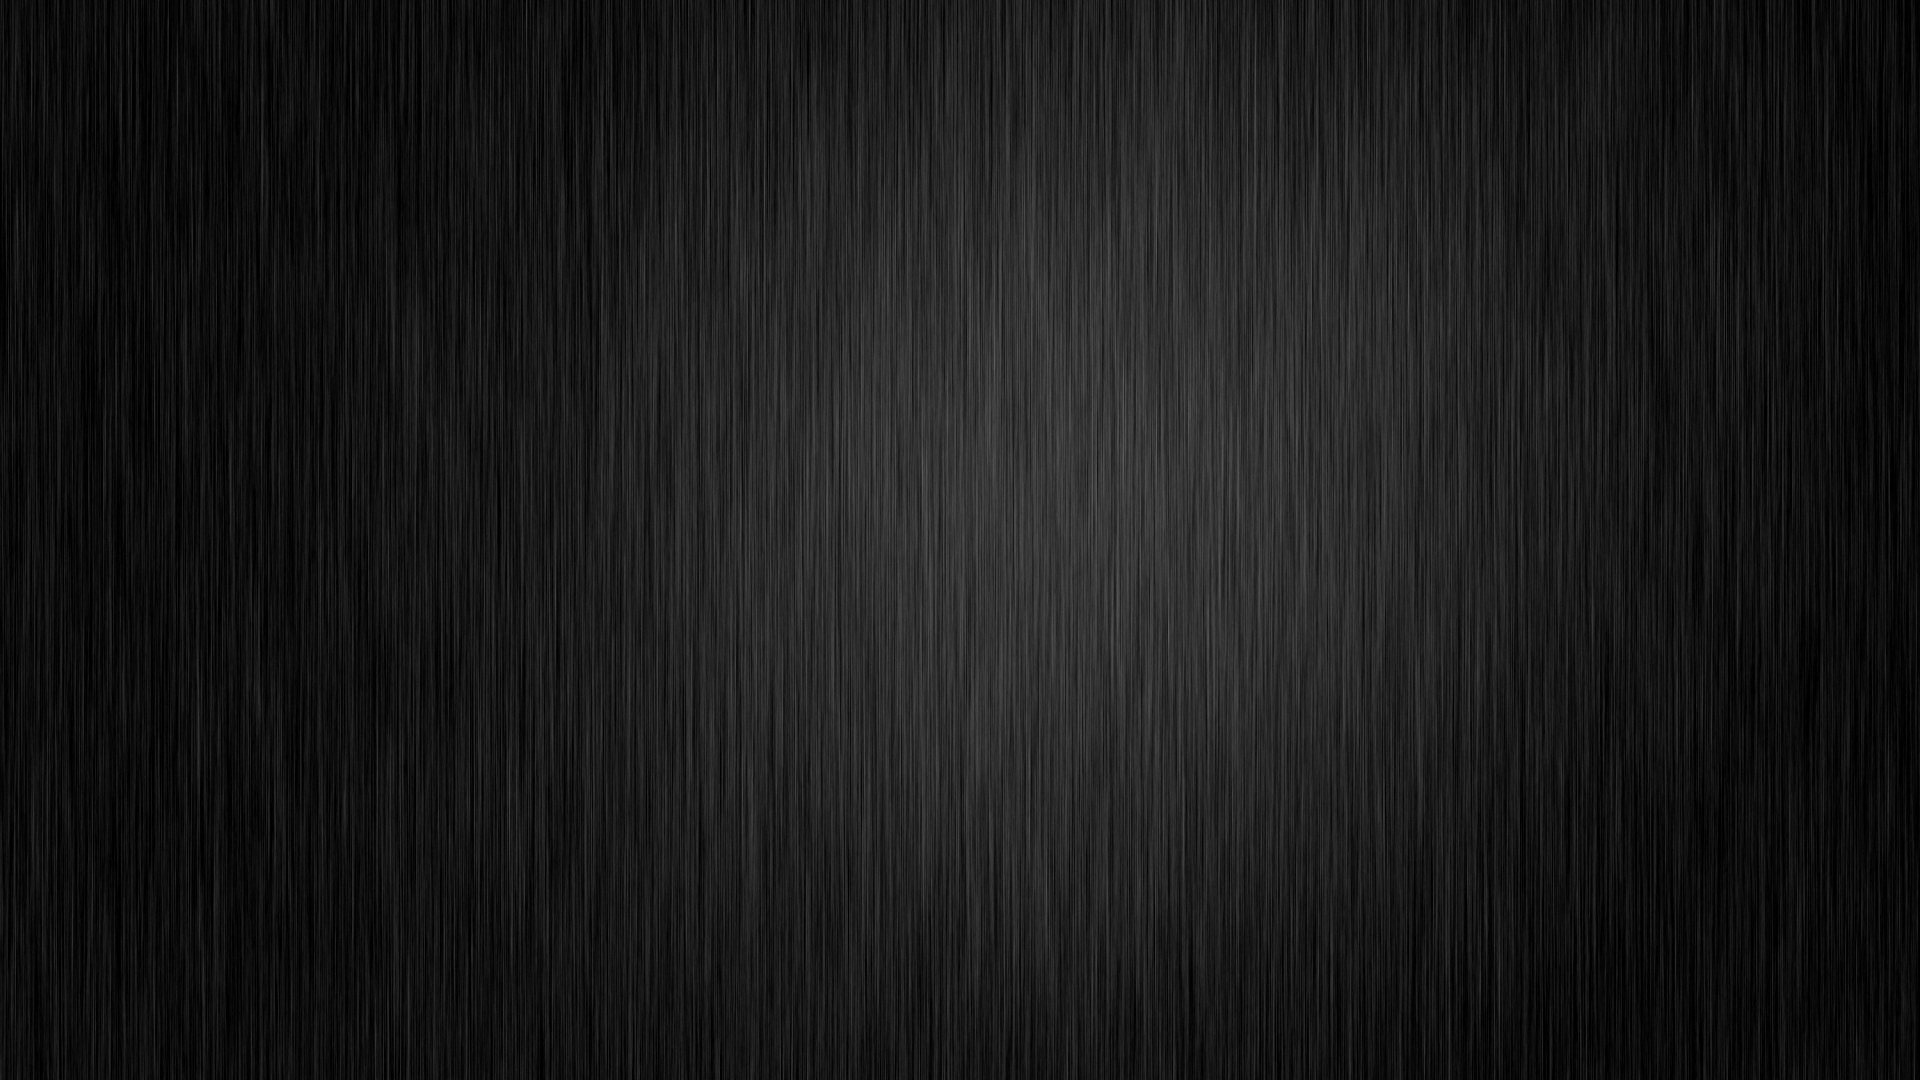 Collection of Black Computer Wallpaper on HDWallpapers